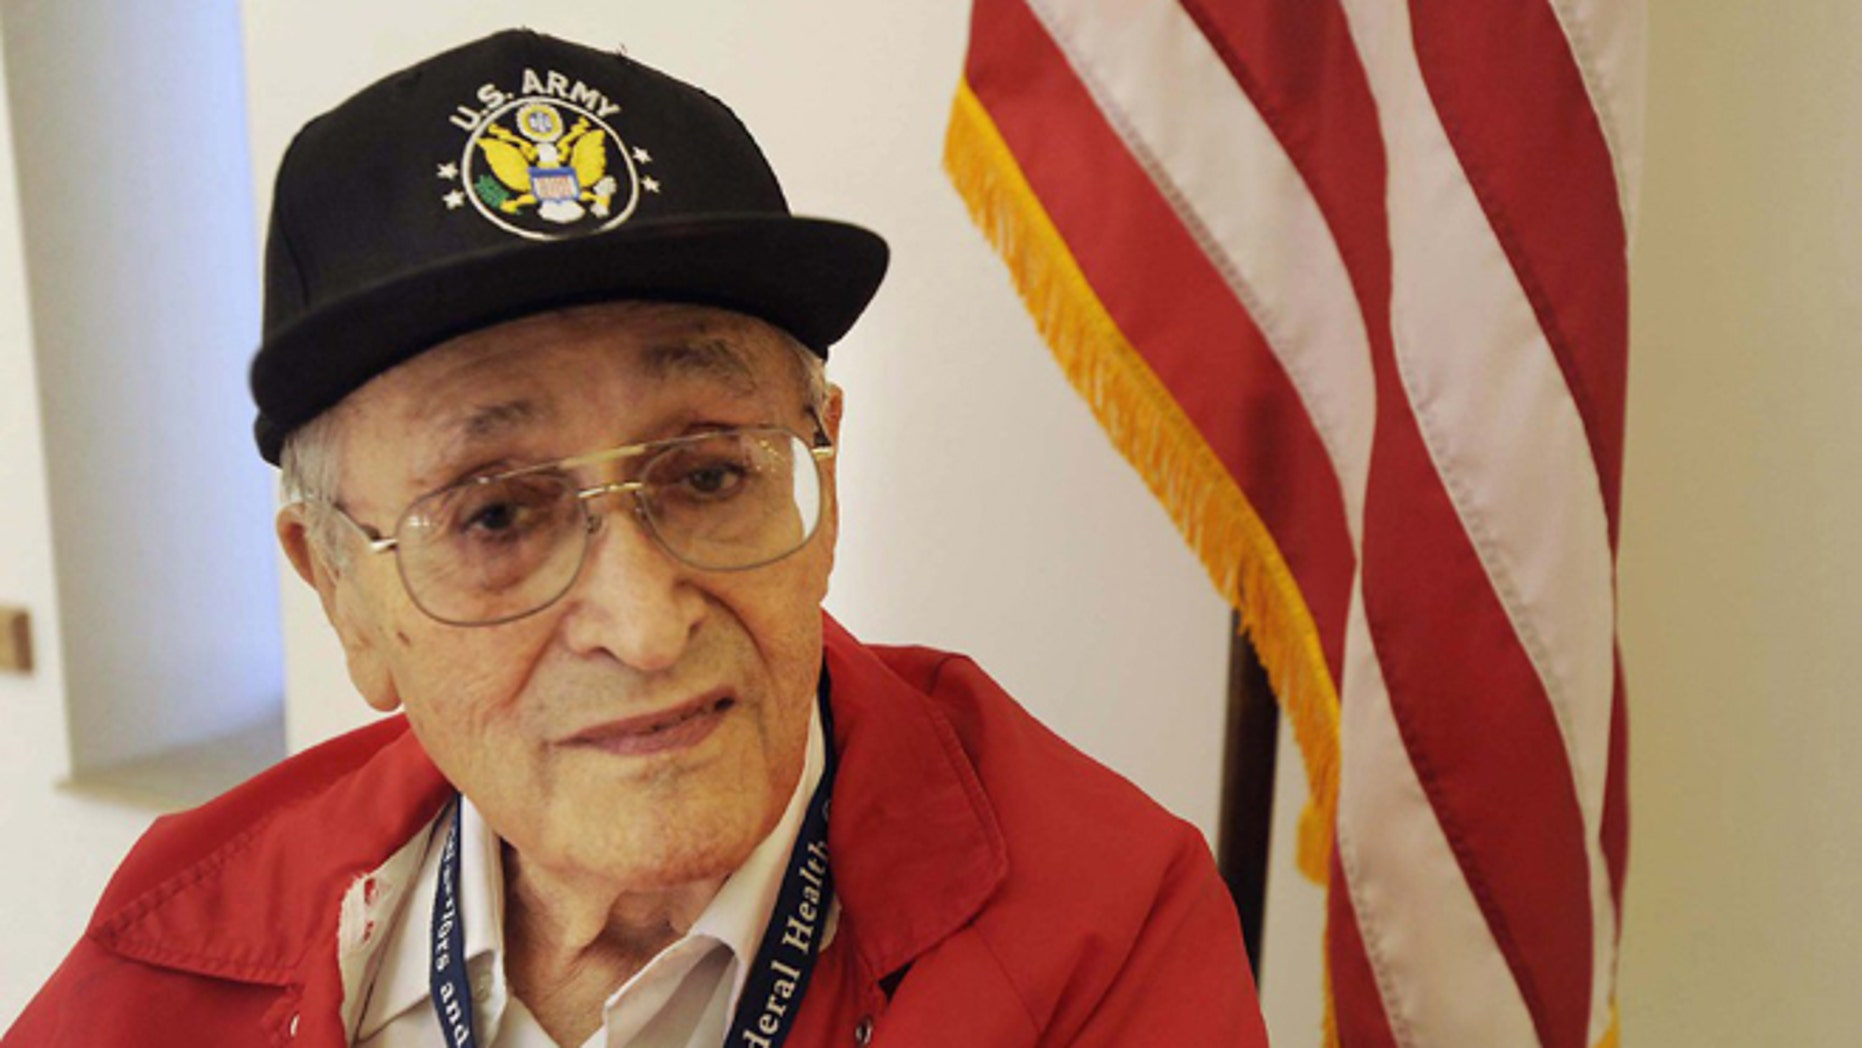 Shown here is the late Stanley Friedman, a World War II veteran who spent decades trying to get VA benefits.